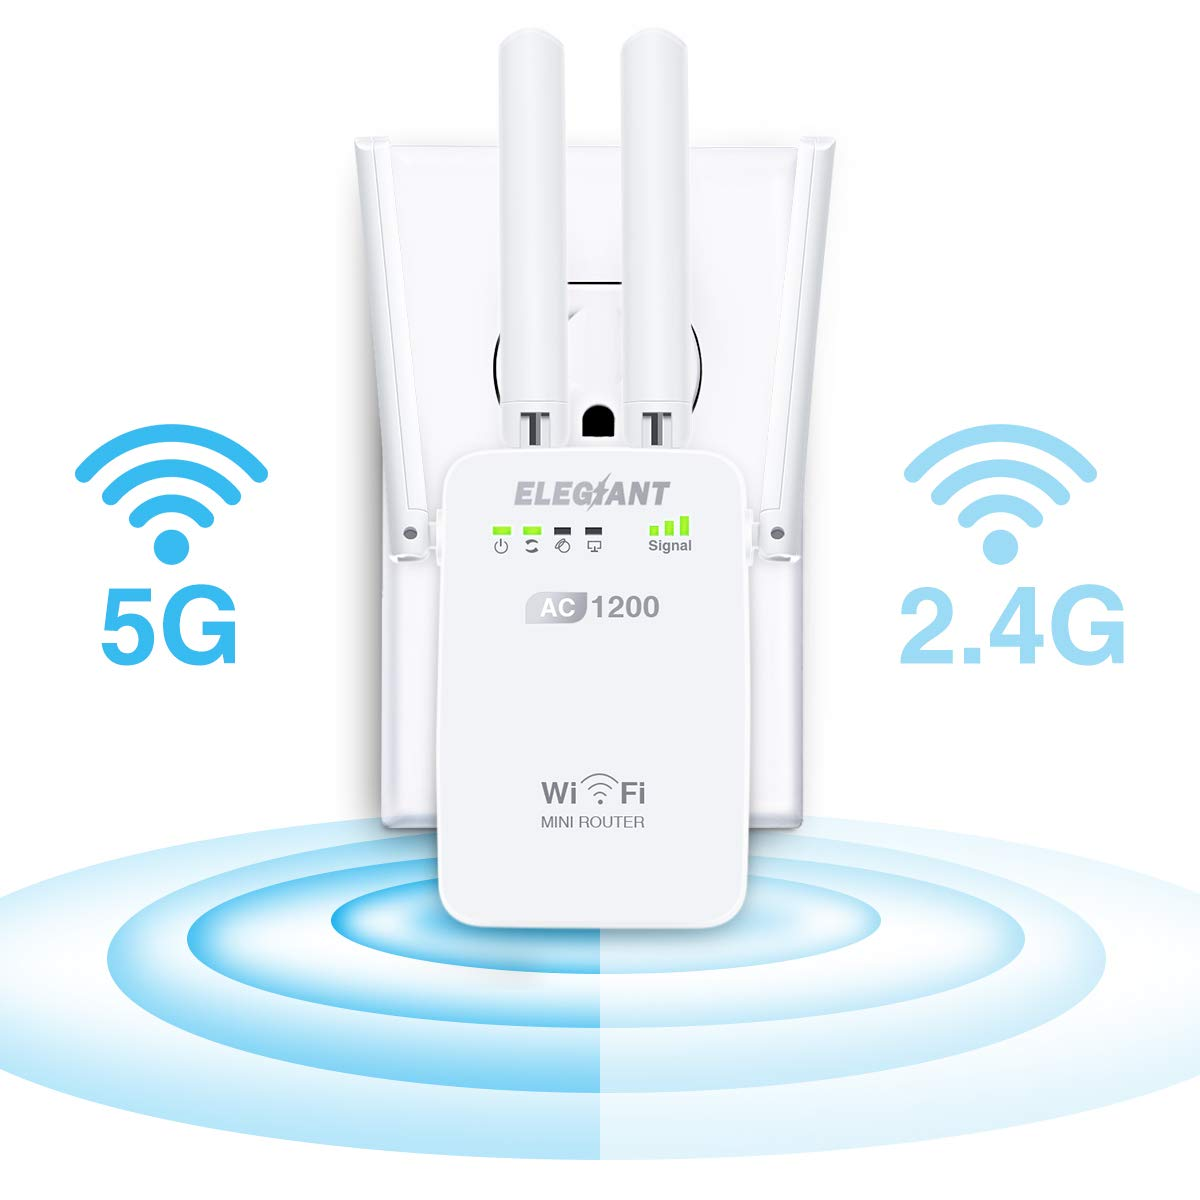 WiFi Range Extender, ELEGIANT AC1200Mbps Wireless WiFi Repeater Signal Amplifier Booster Supports Router/Repeater/Access Point, with High Gain 4 External Antennas and 360 Degree WiFi Coverage (White)